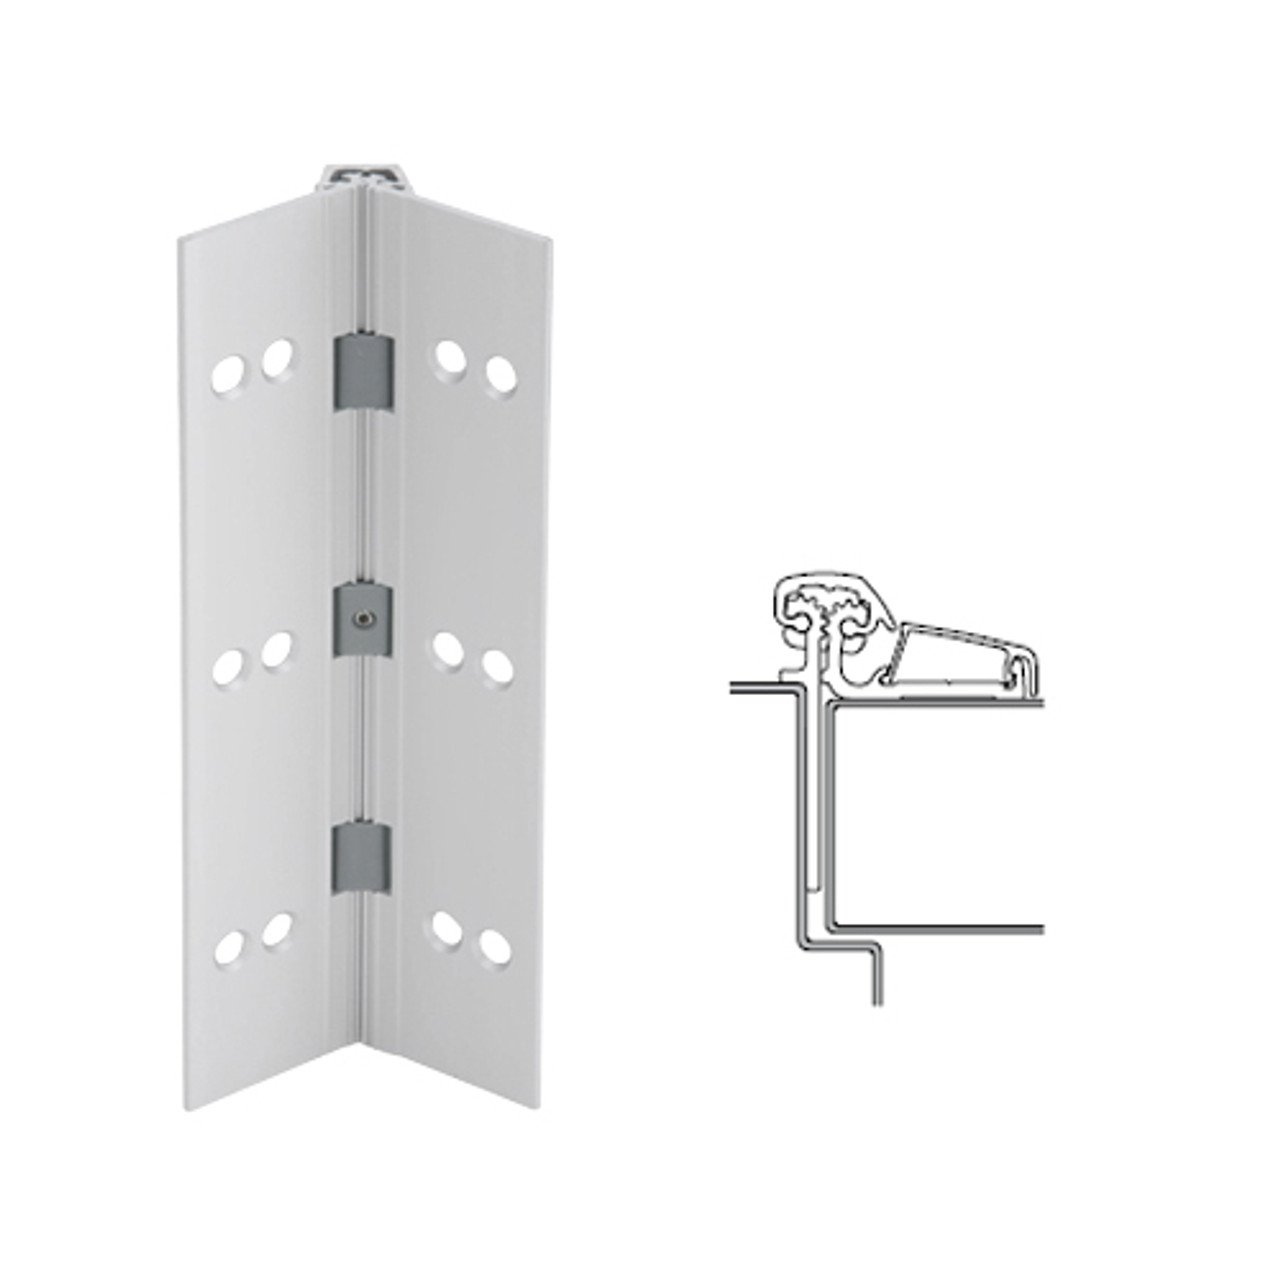 053XY-US28-95-TFWD IVES Adjustable Half Surface Continuous Geared Hinges with Thread Forming Screws in Satin Aluminum